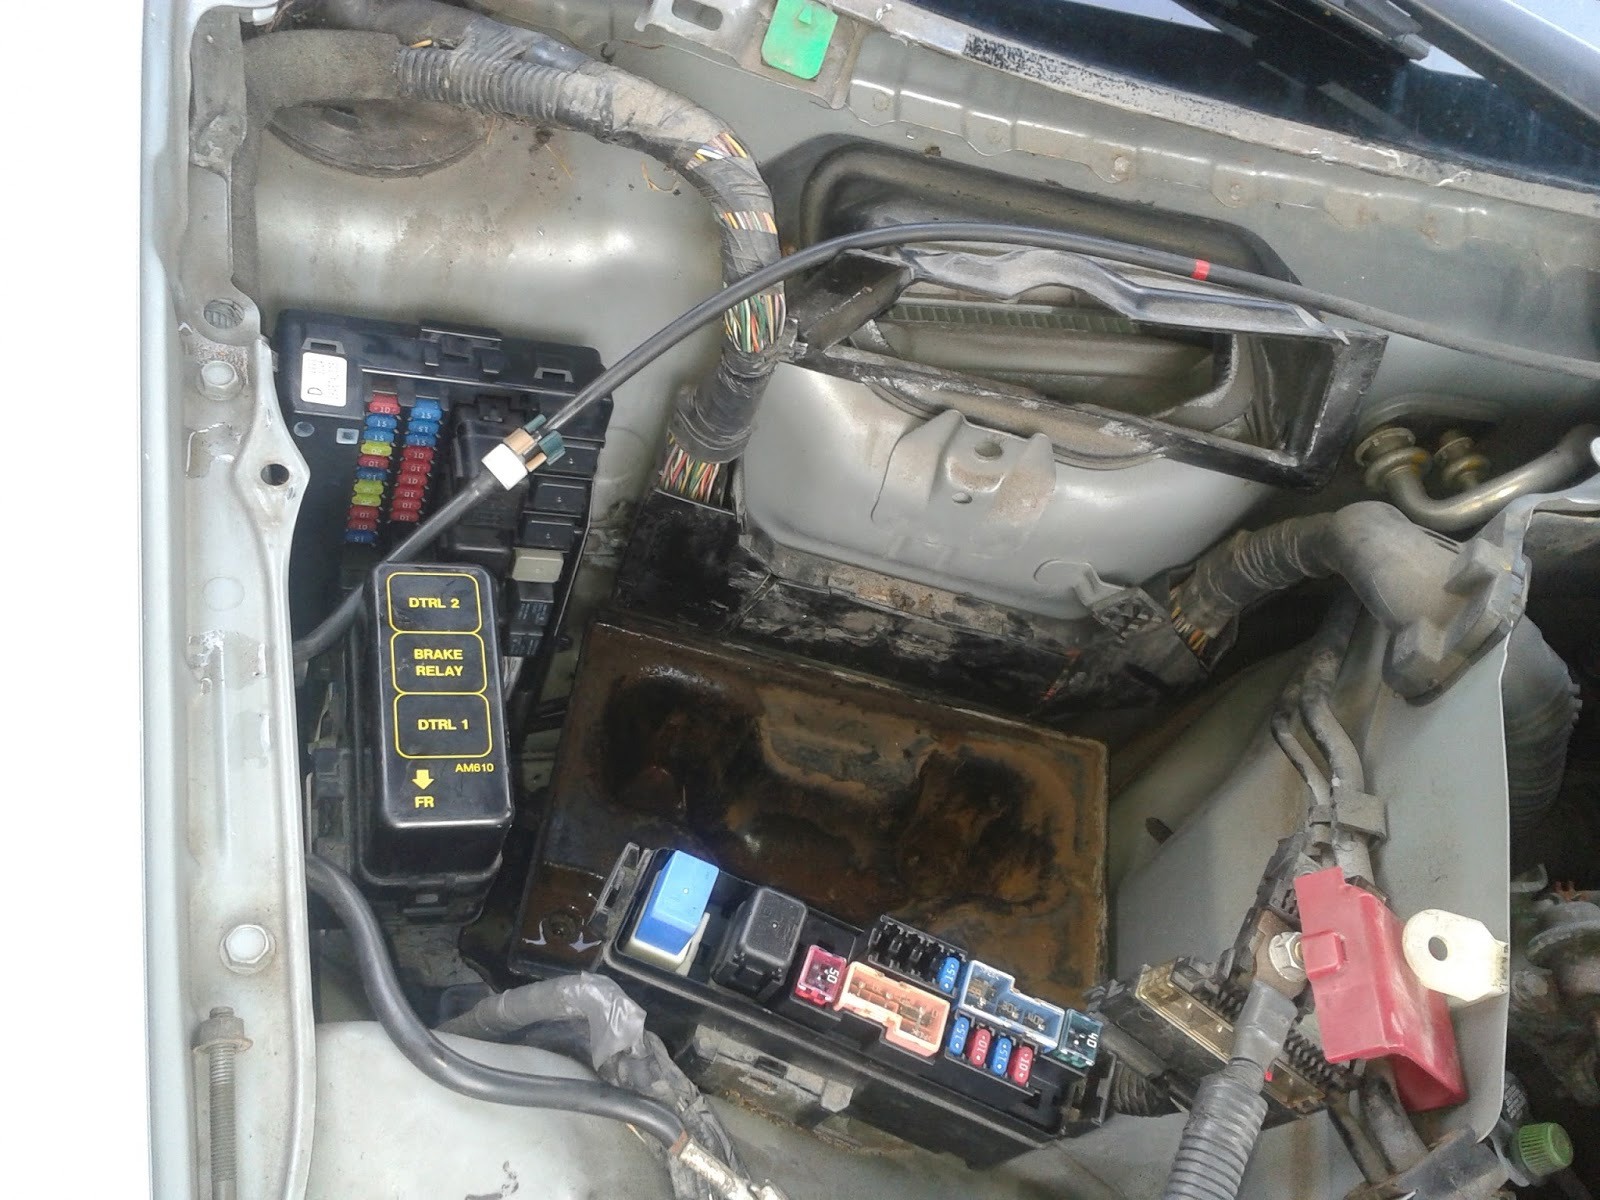 2015 05 27%2B18.55.50 zf inifiniti g35 2003 wet ipdm issue, how to fix it 2004 infiniti g35 fuse box at suagrazia.org